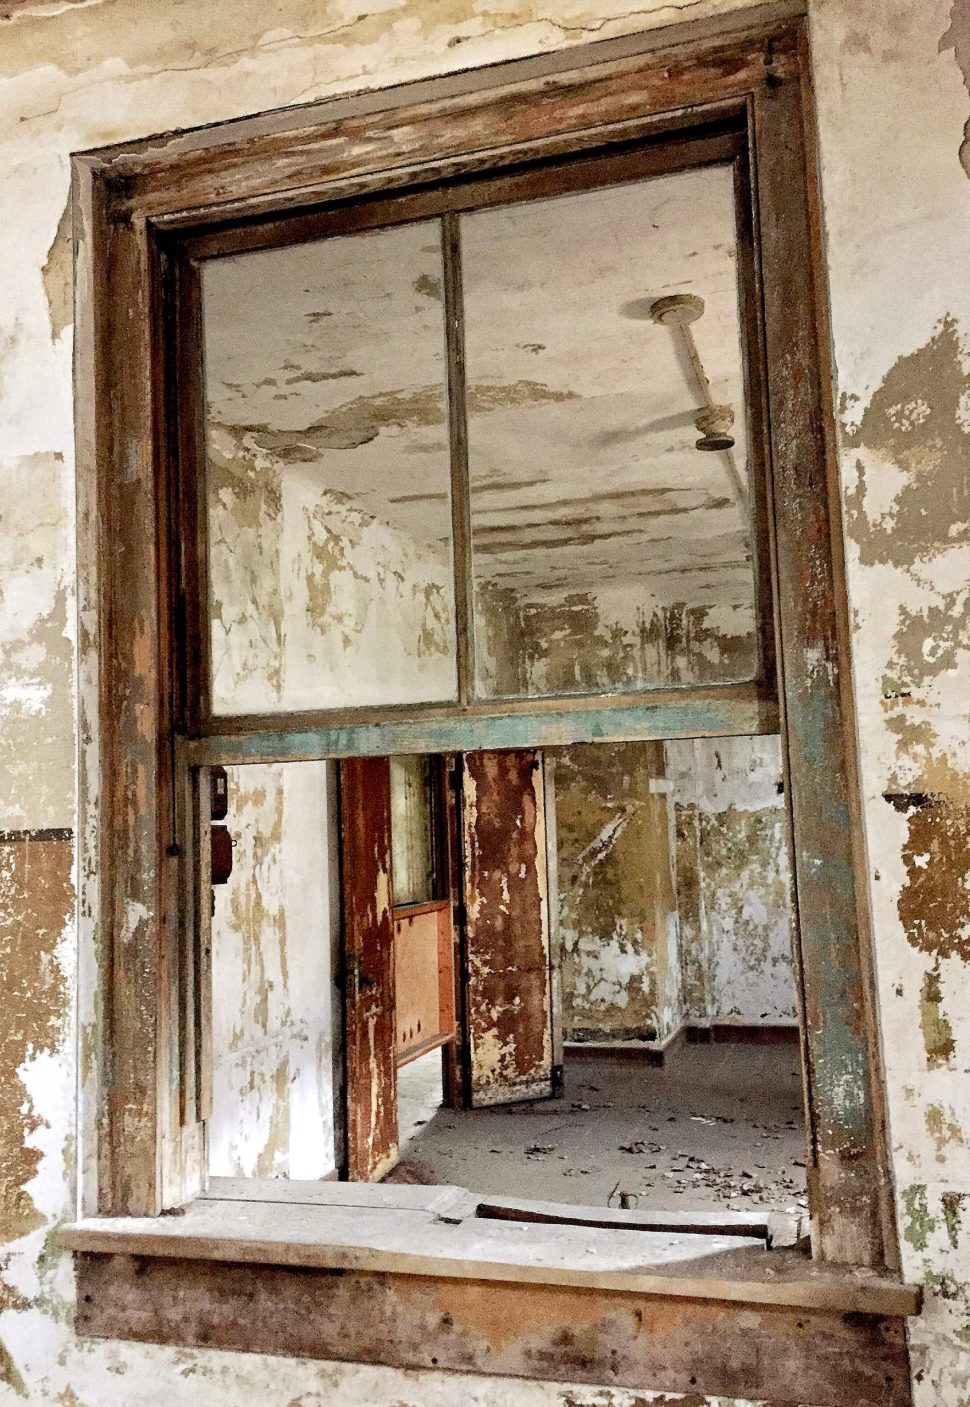 (2) Immigrant Hospital, Ellis Island. Photo by Rick Stachura. March 28, 2015.